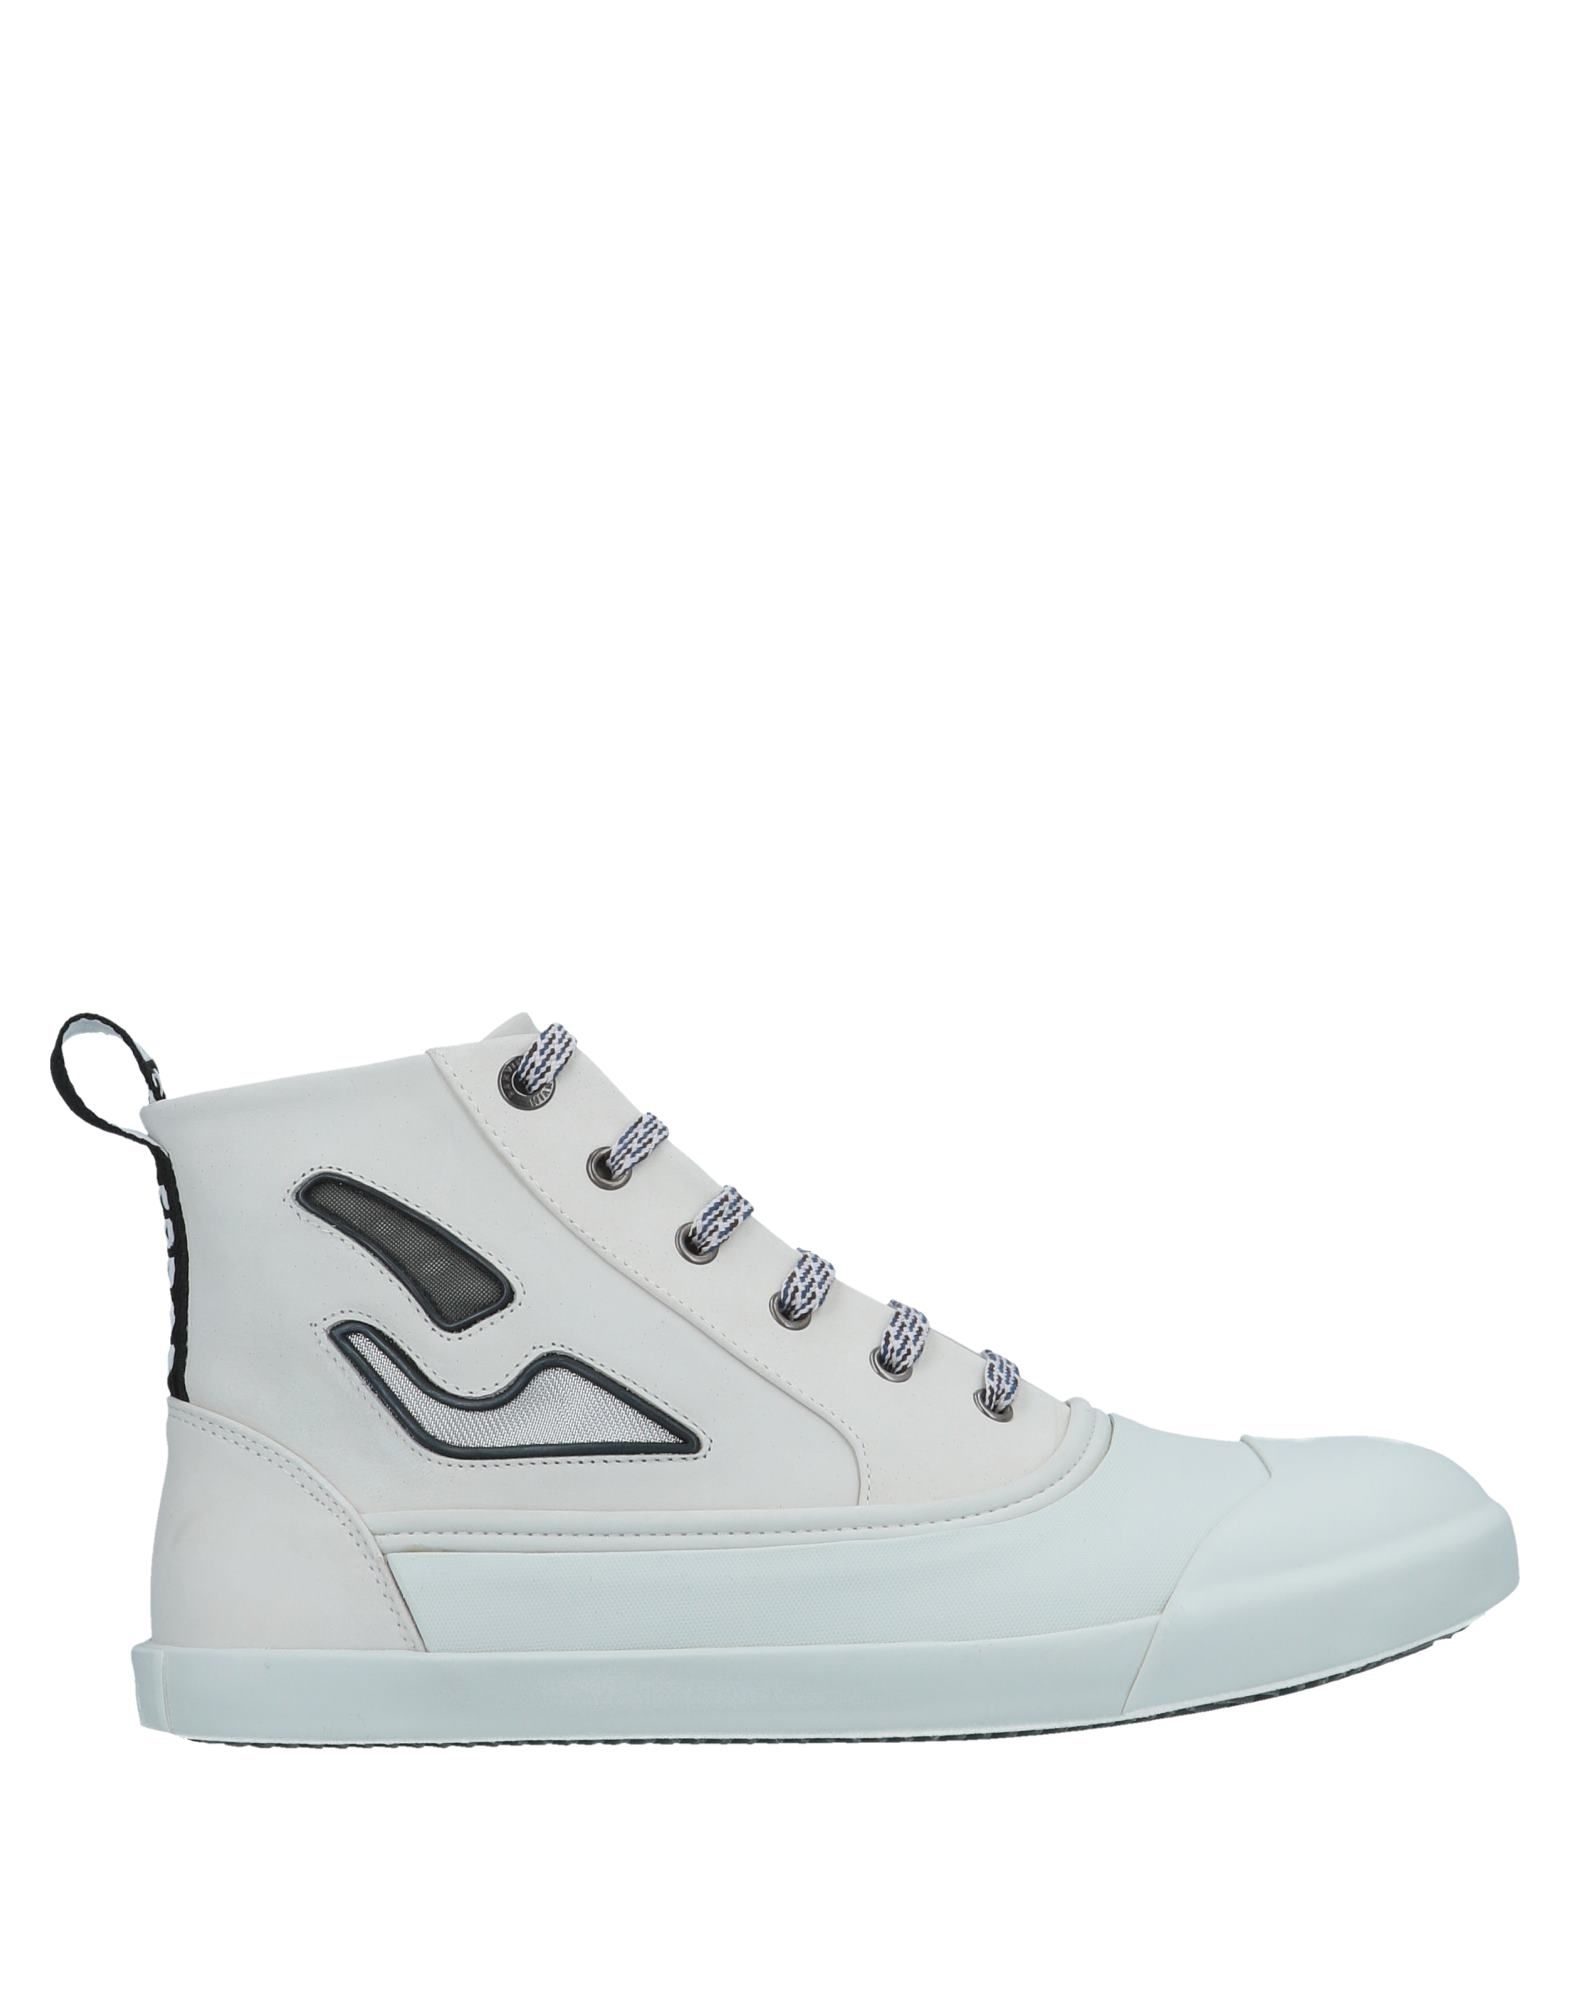 Lanvin Sneakers - Men  Lanvin Sneakers online on  Men United Kingdom - 11342248VM ad5f0e